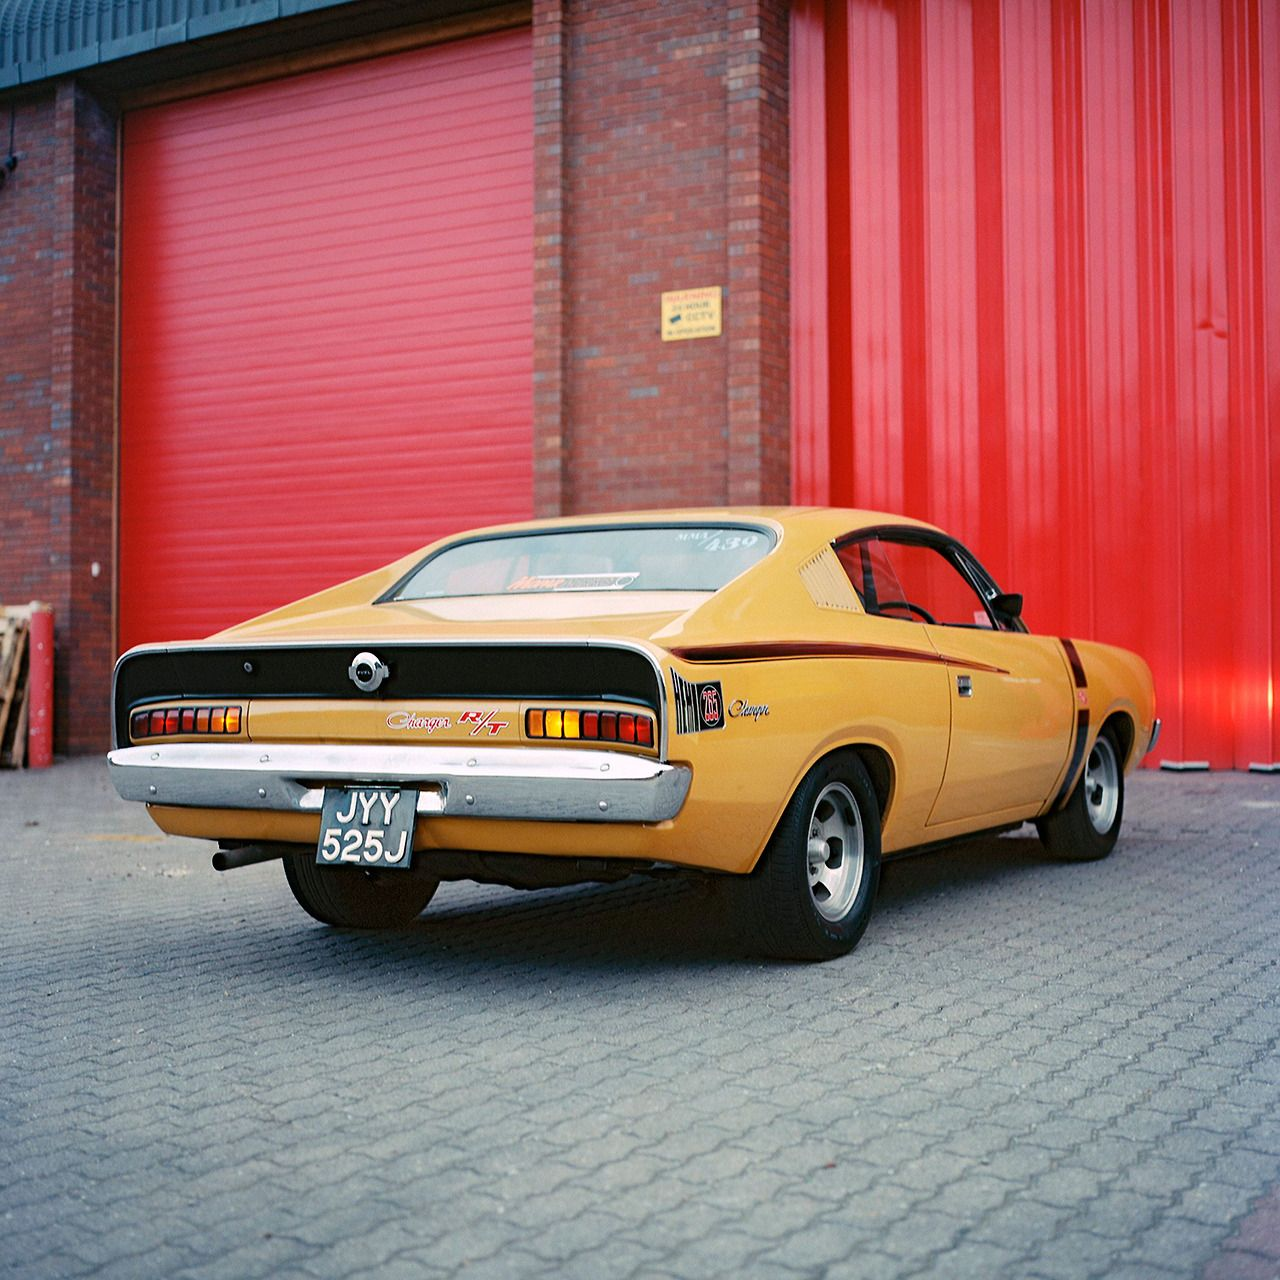 Chrysler Valiant Charger Rt 1972 With Images Chrysler